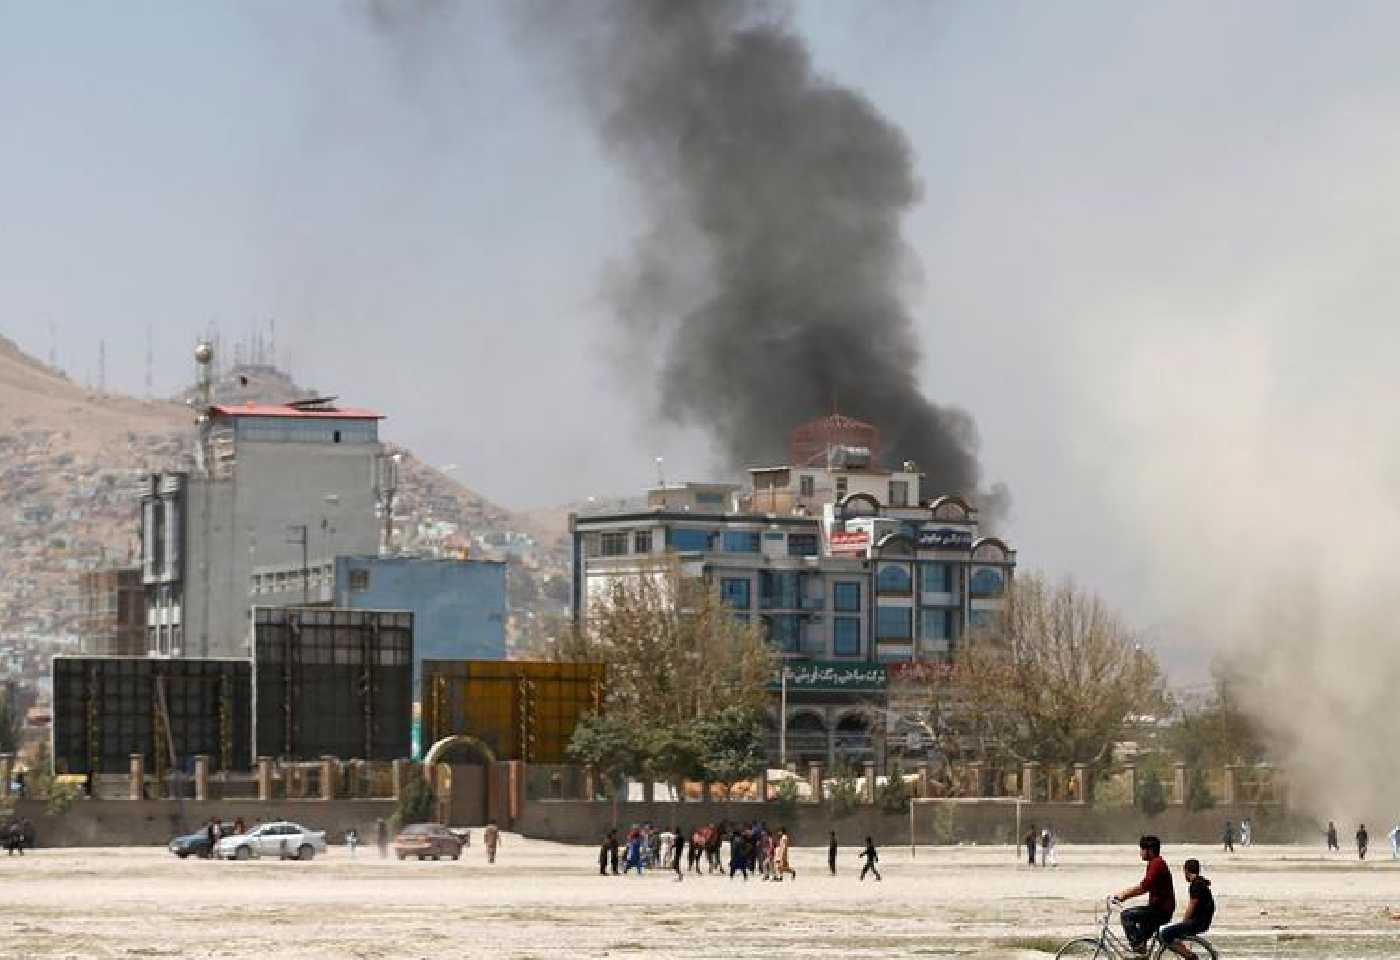 Afghanistan Taliban fires Rockets Near Presidential Palace In Kabul During Eid Prayers